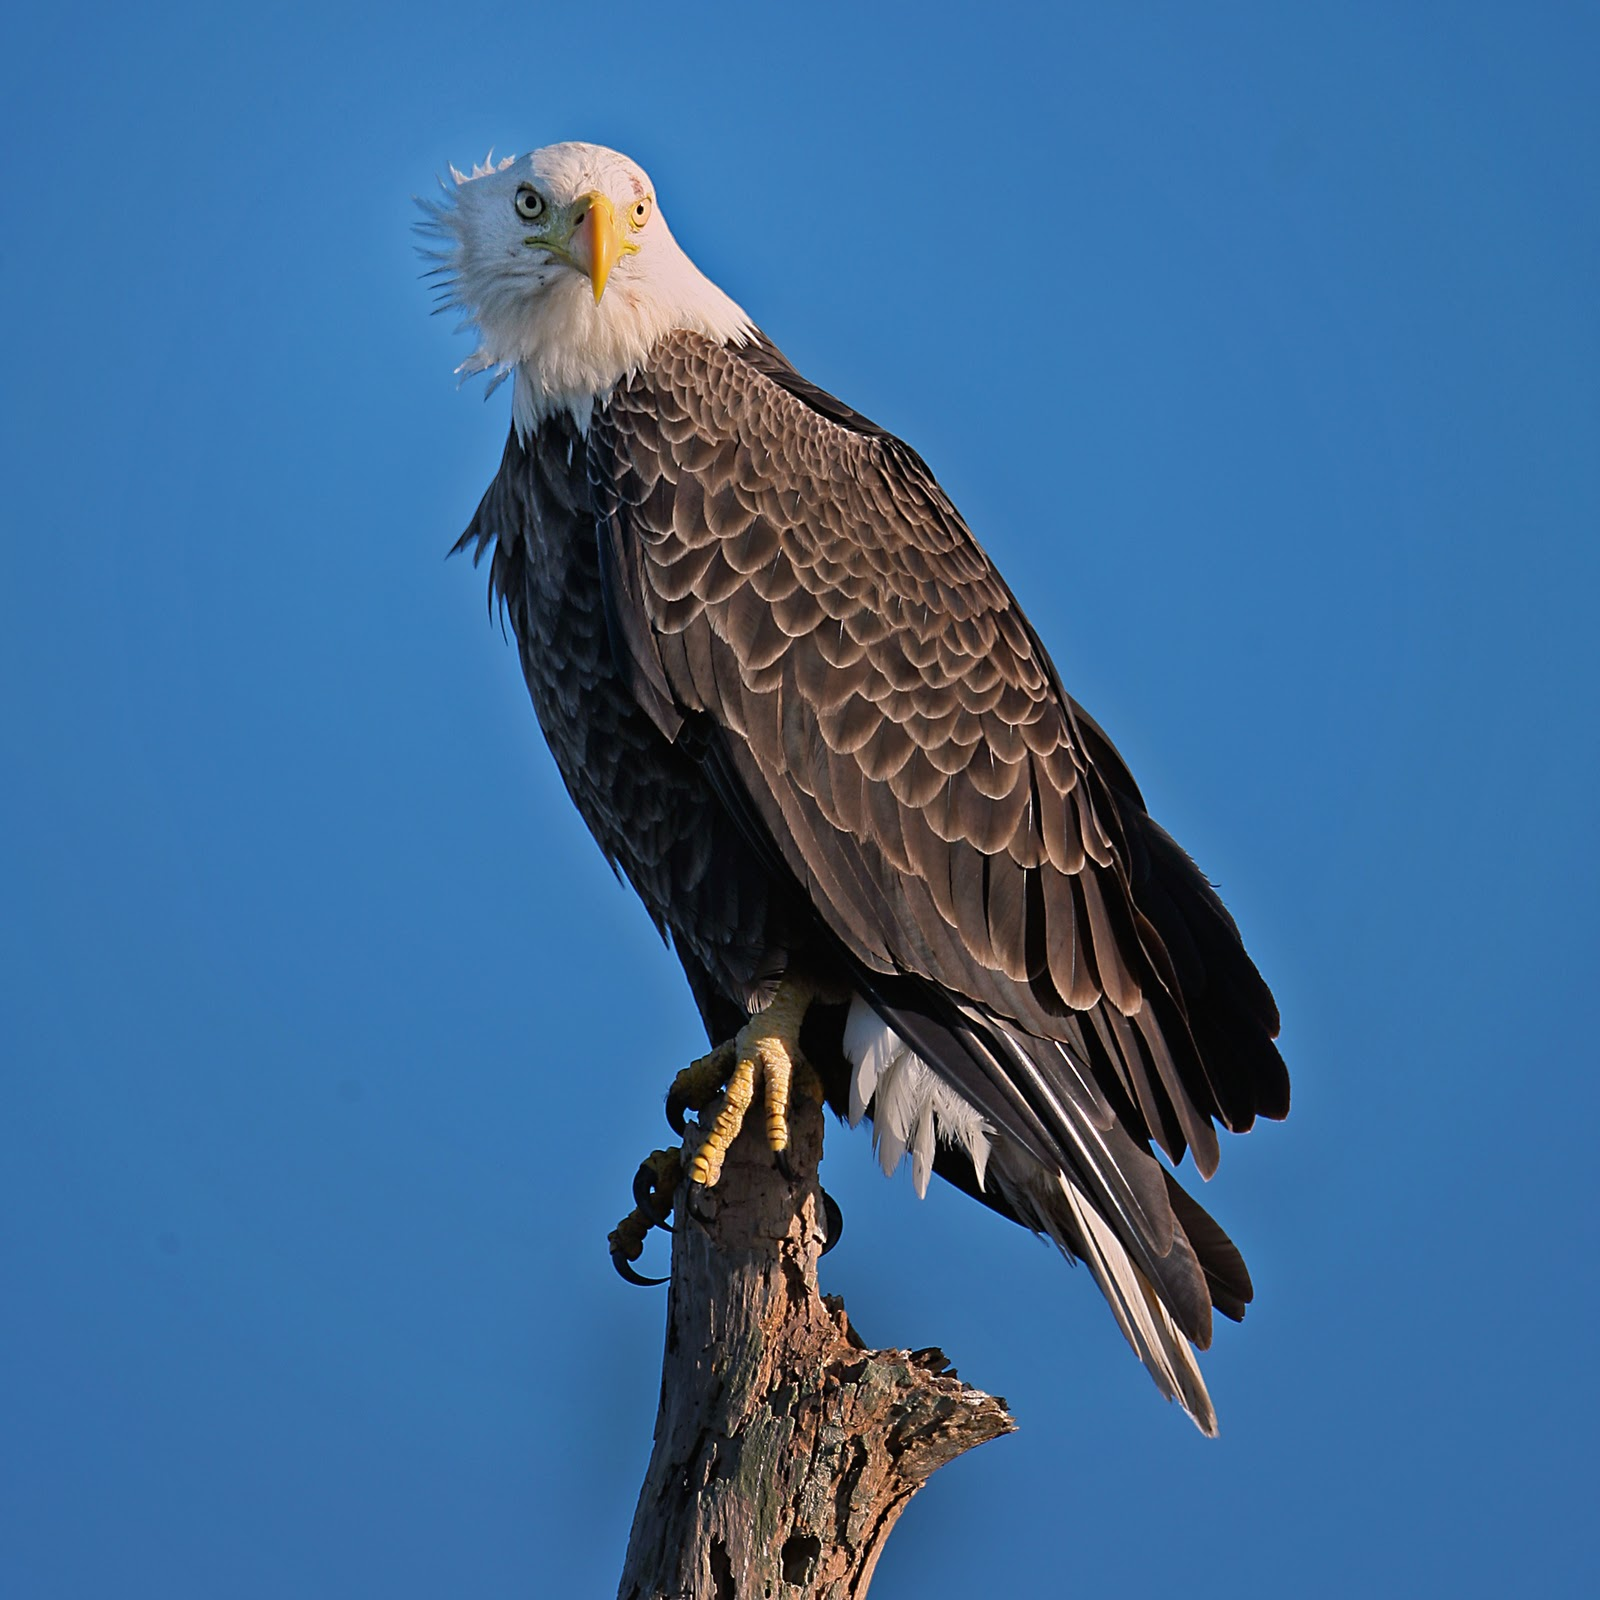 what does the bald eagle symbolize in america